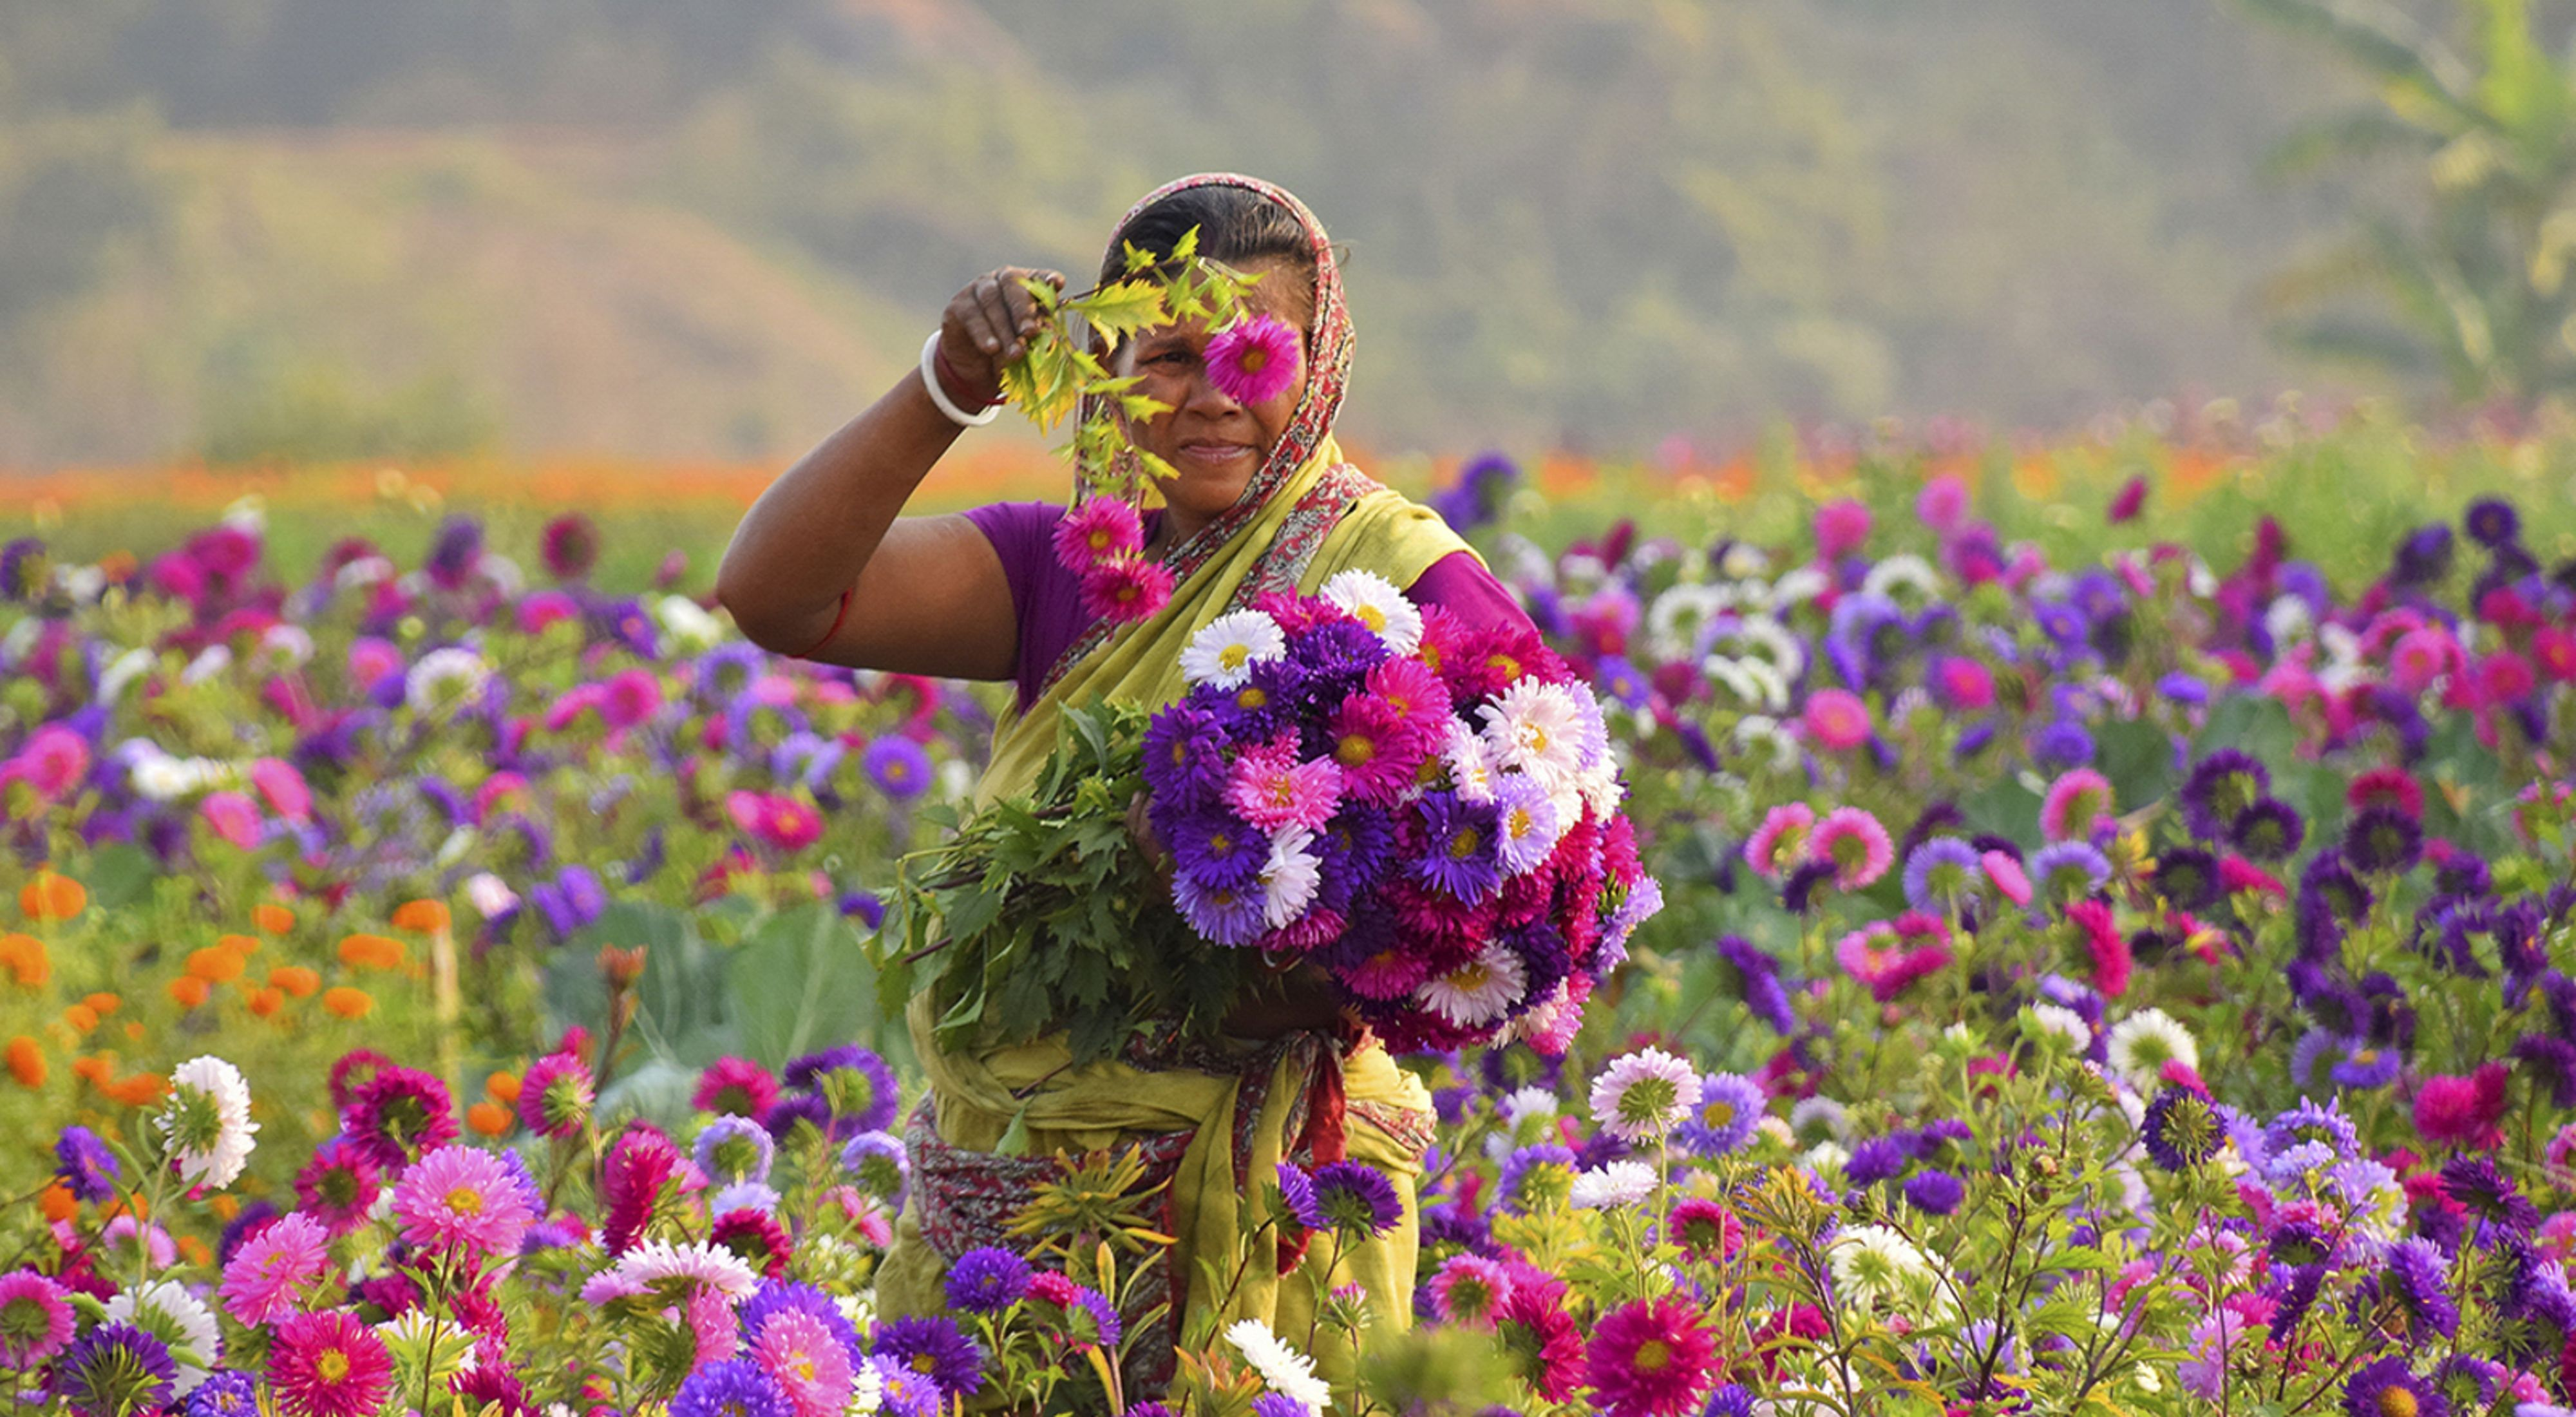 A woman working at a flower field. Khirai, West Bengal, India.